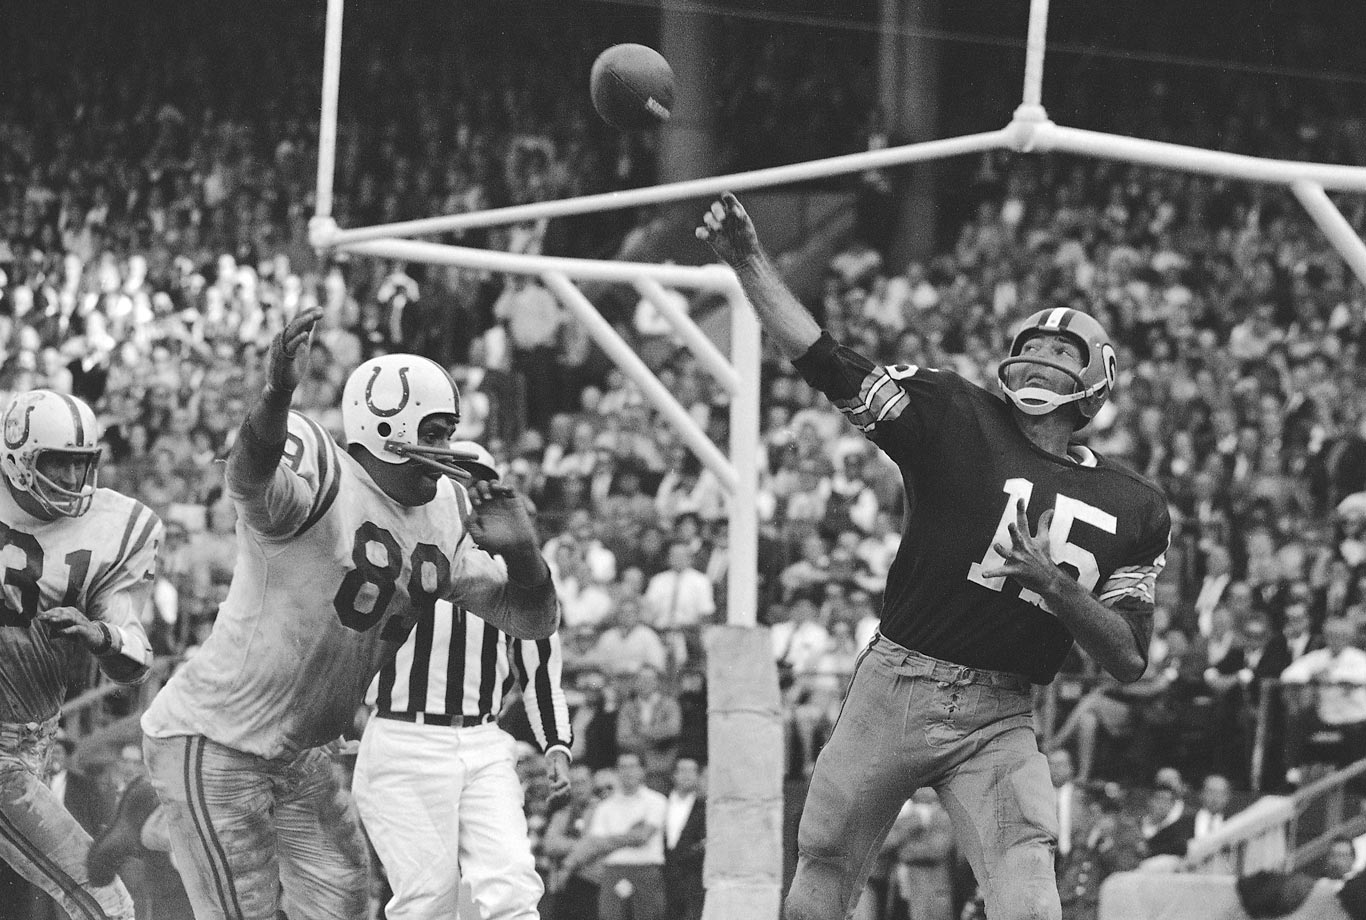 In 1964, the Packers again finished second in the Western Conference, this time behind the Baltimore Colts. Over the season, Starr completed 59.9% of his passes and had 15 touchdowns to just four interceptions. (Text credit: Shannon Carroll)